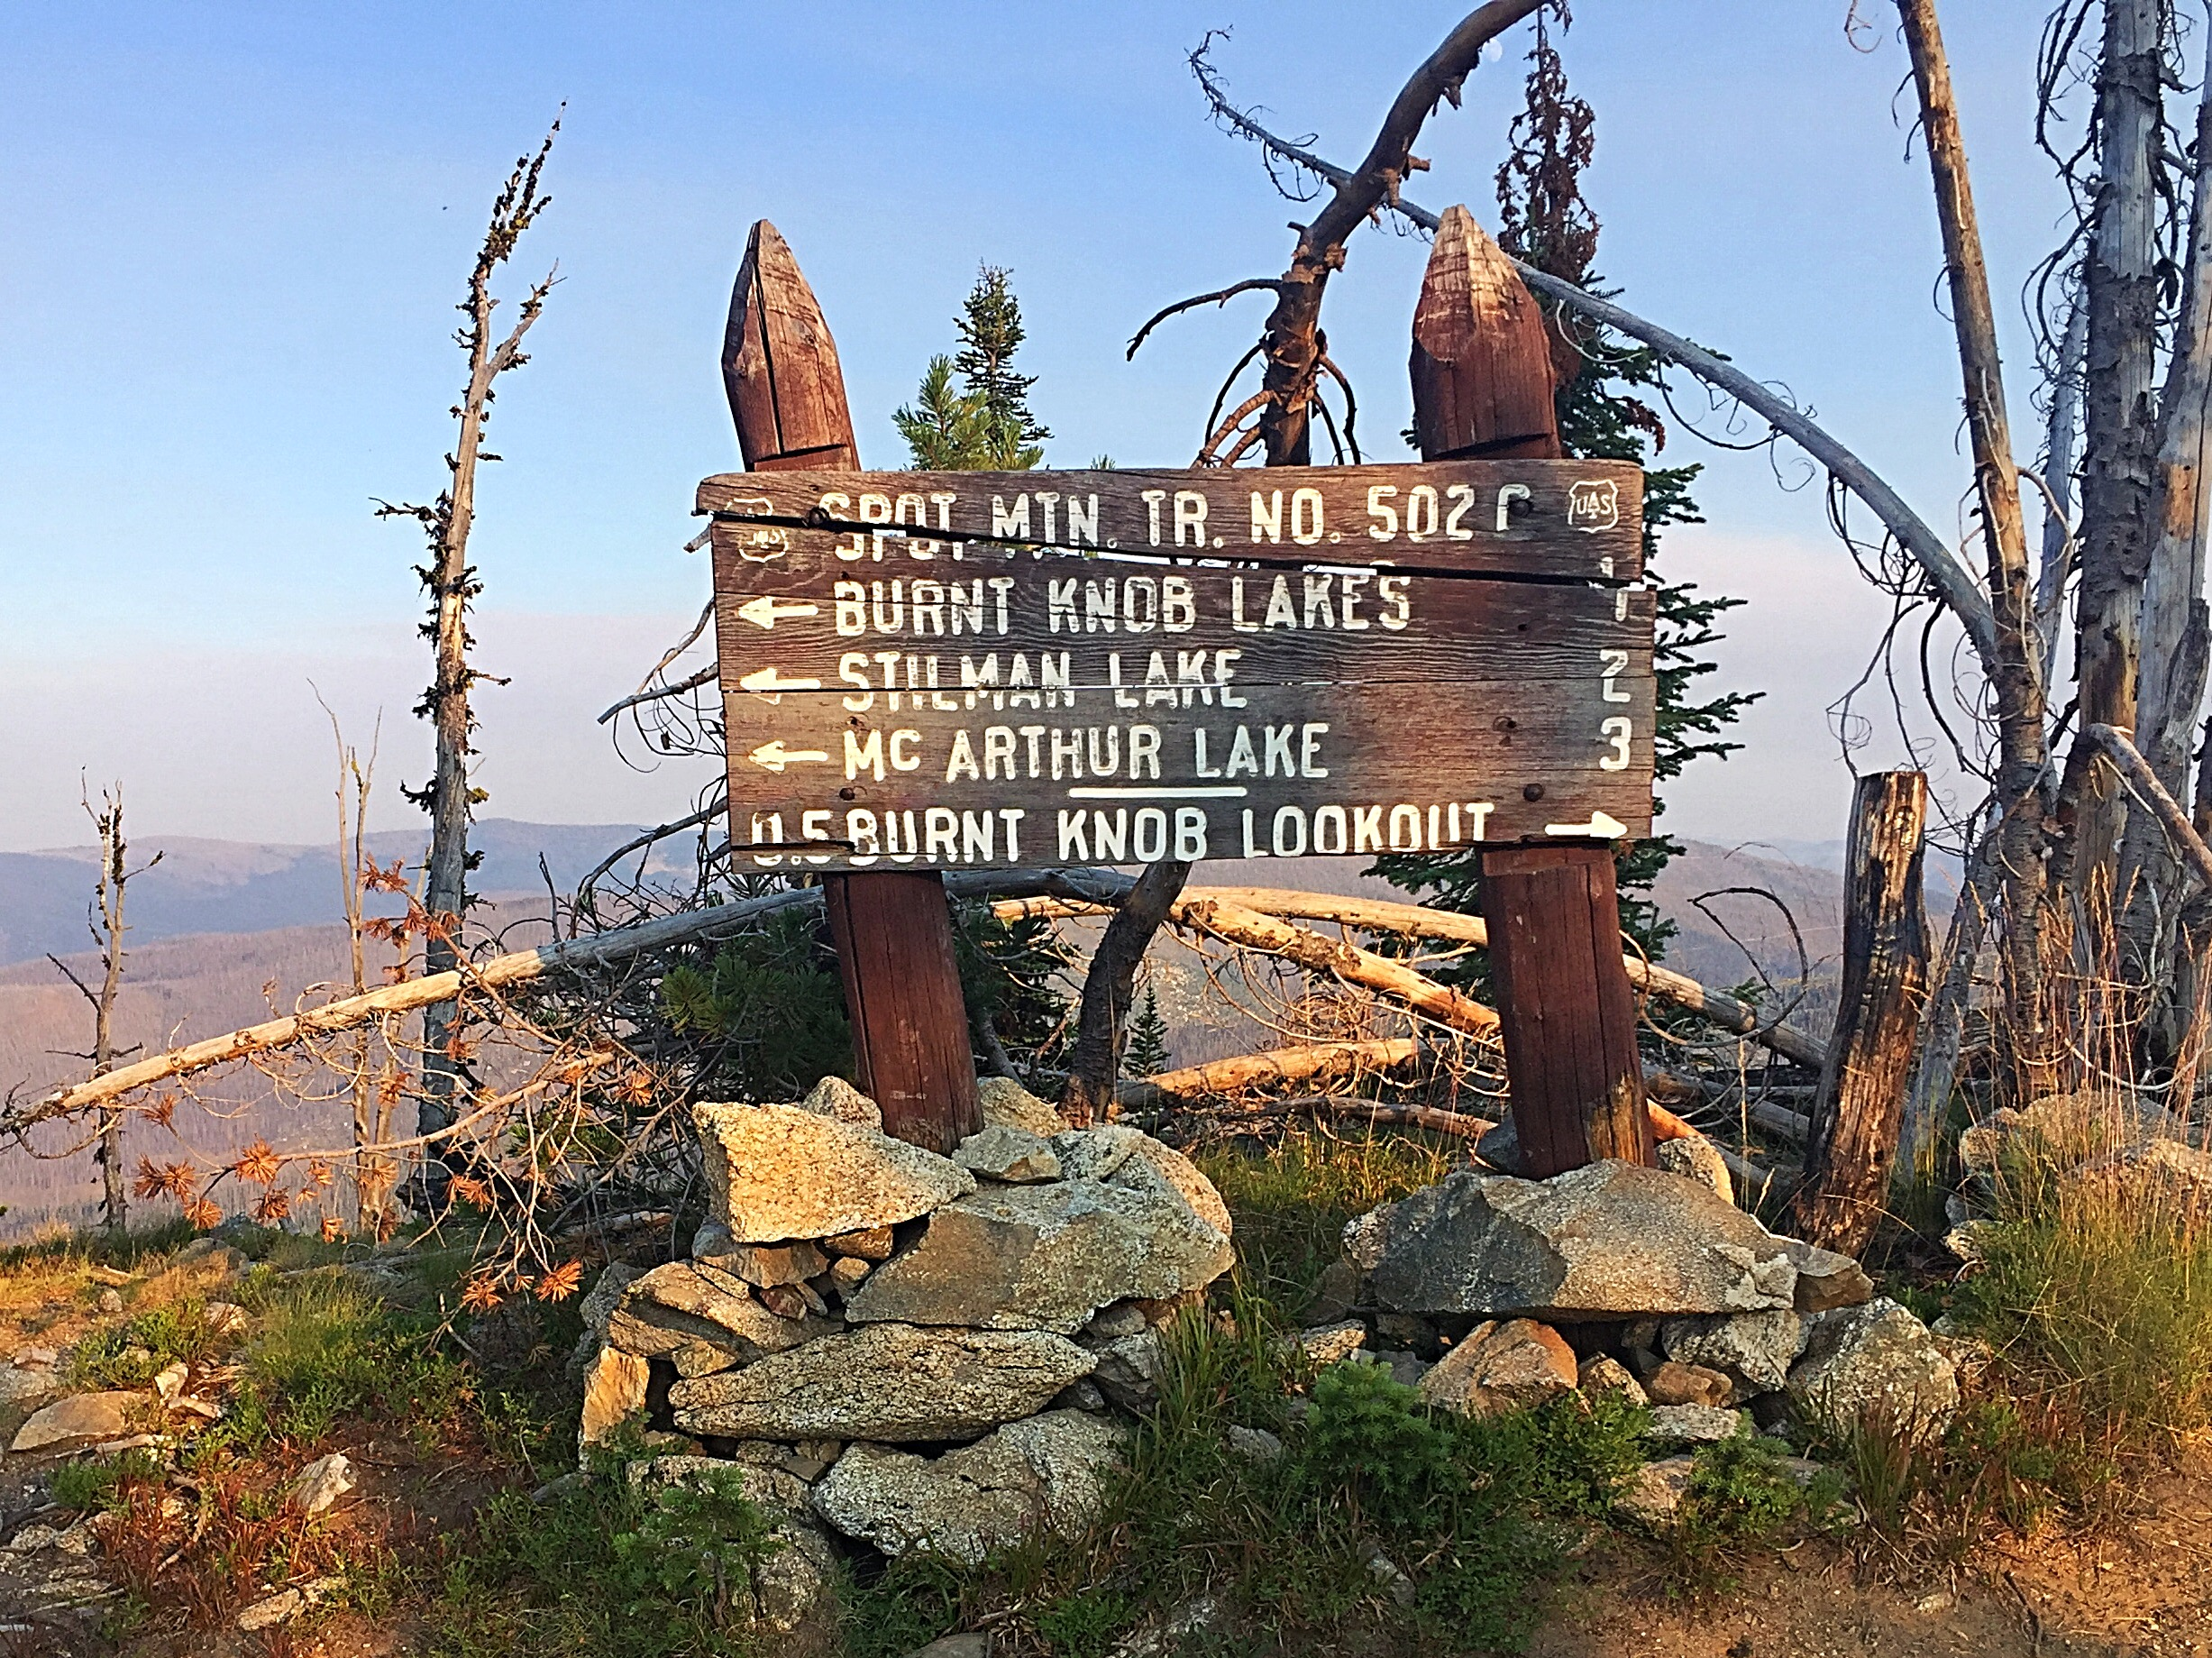 The sign at the trailhead. Note that despite what the sign says there were no side trails to the lakes.